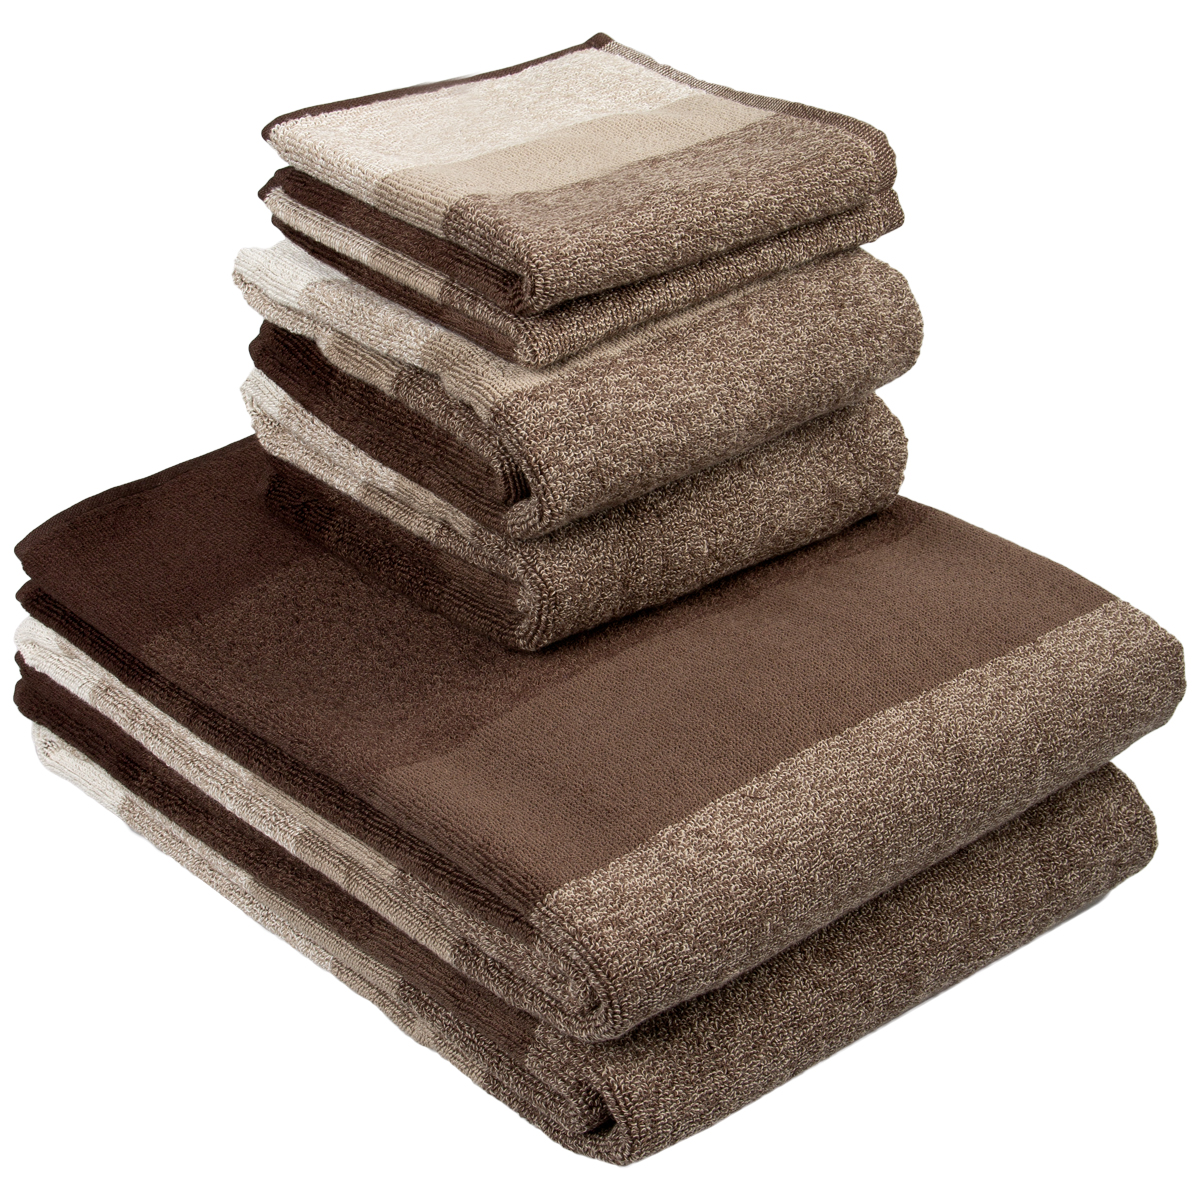 Bath towels are where luxury meets function, so you should choose a fabric that feels good against your skin while fitting your lifestyle. Pima and Egyptian cotton linens are heavy and plush, but may need longer to air out. Turkish cotton towels dry quickly and are durable and more lightweight. For travel, throw a microfiber bath towel in your.